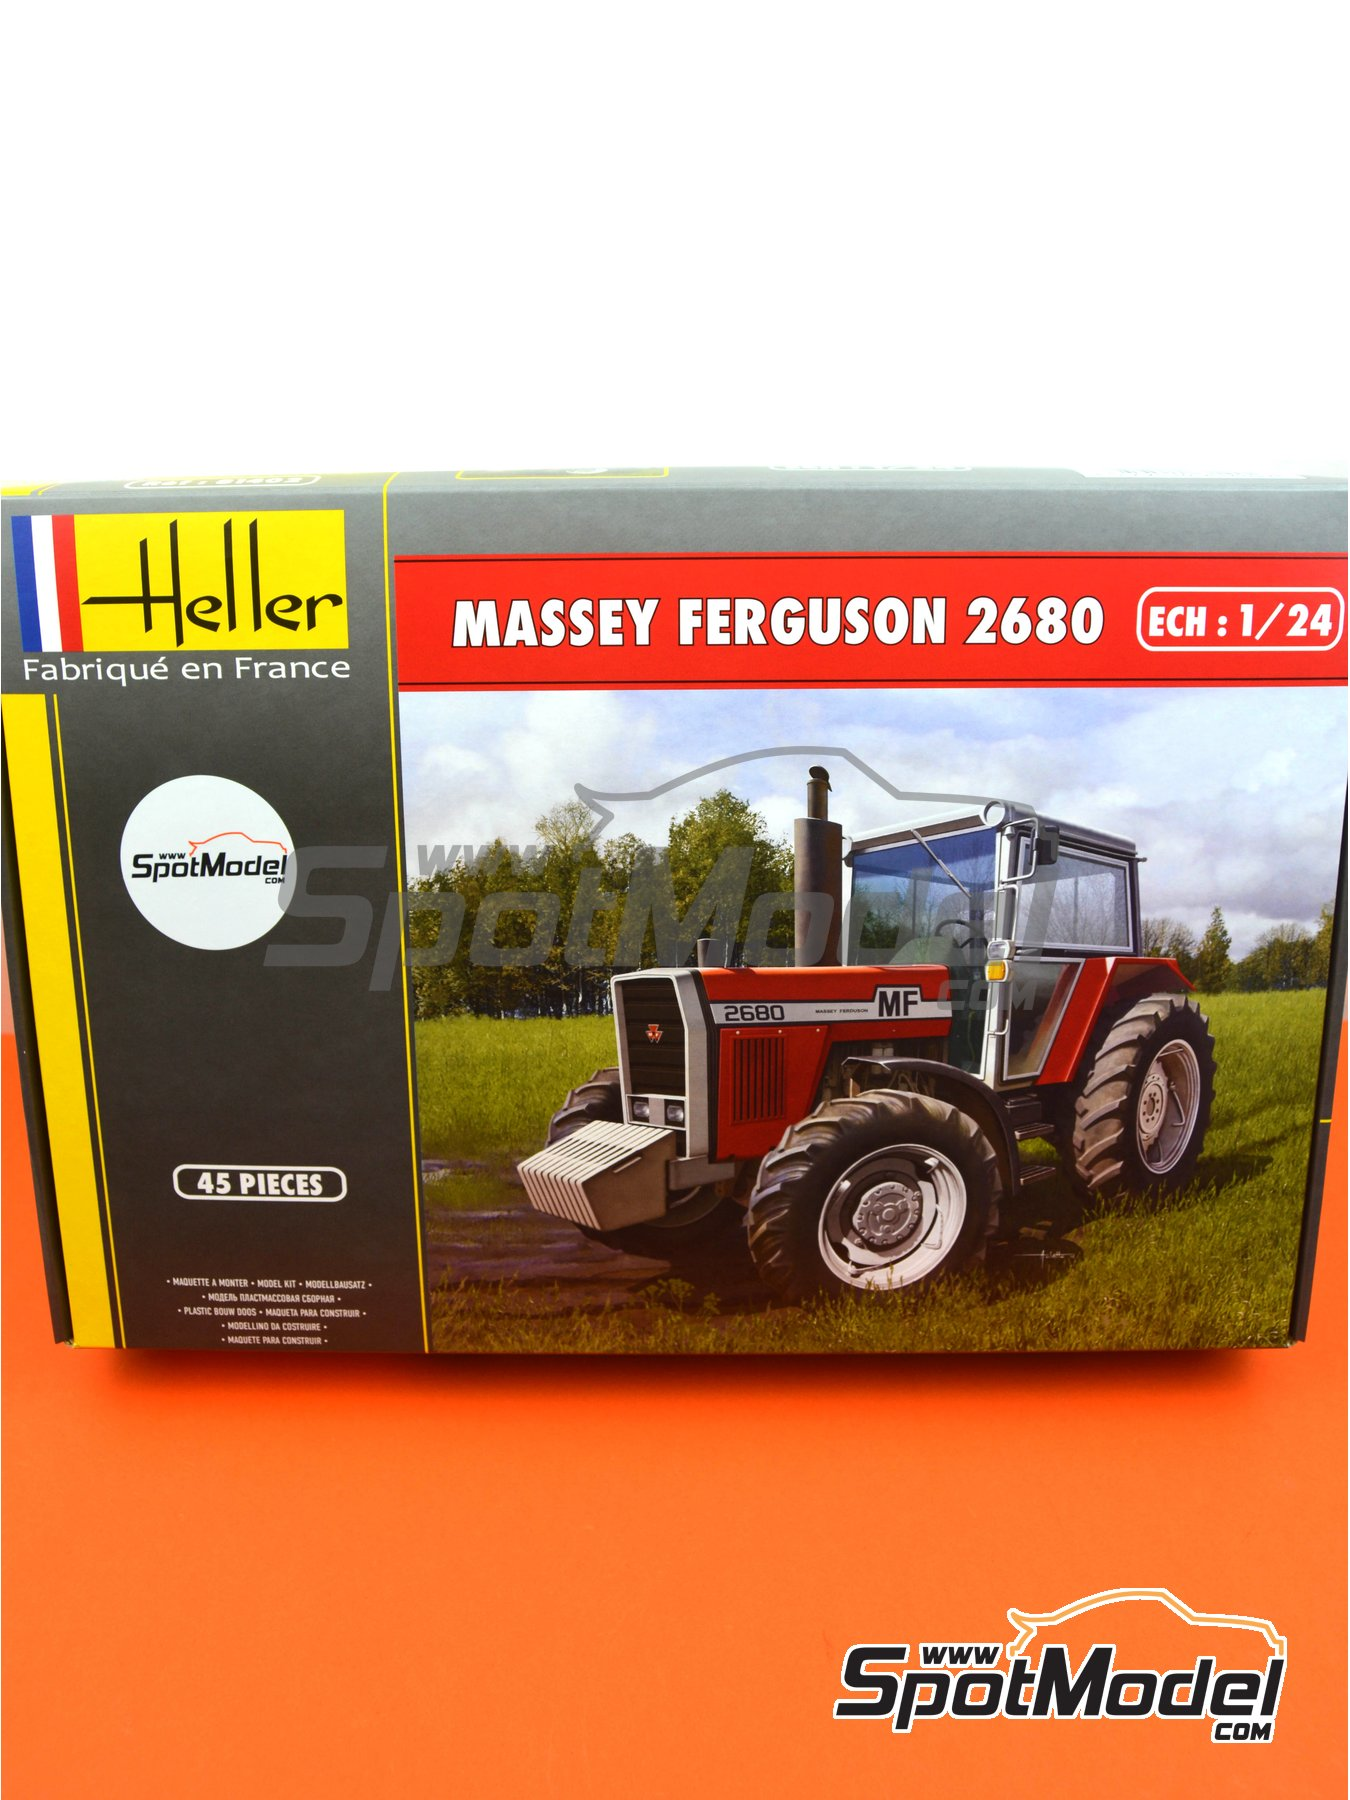 Massey Ferguson 2680 tractor | Model tractor kit in 1/24 scale manufactured by Heller (ref. 81402) image